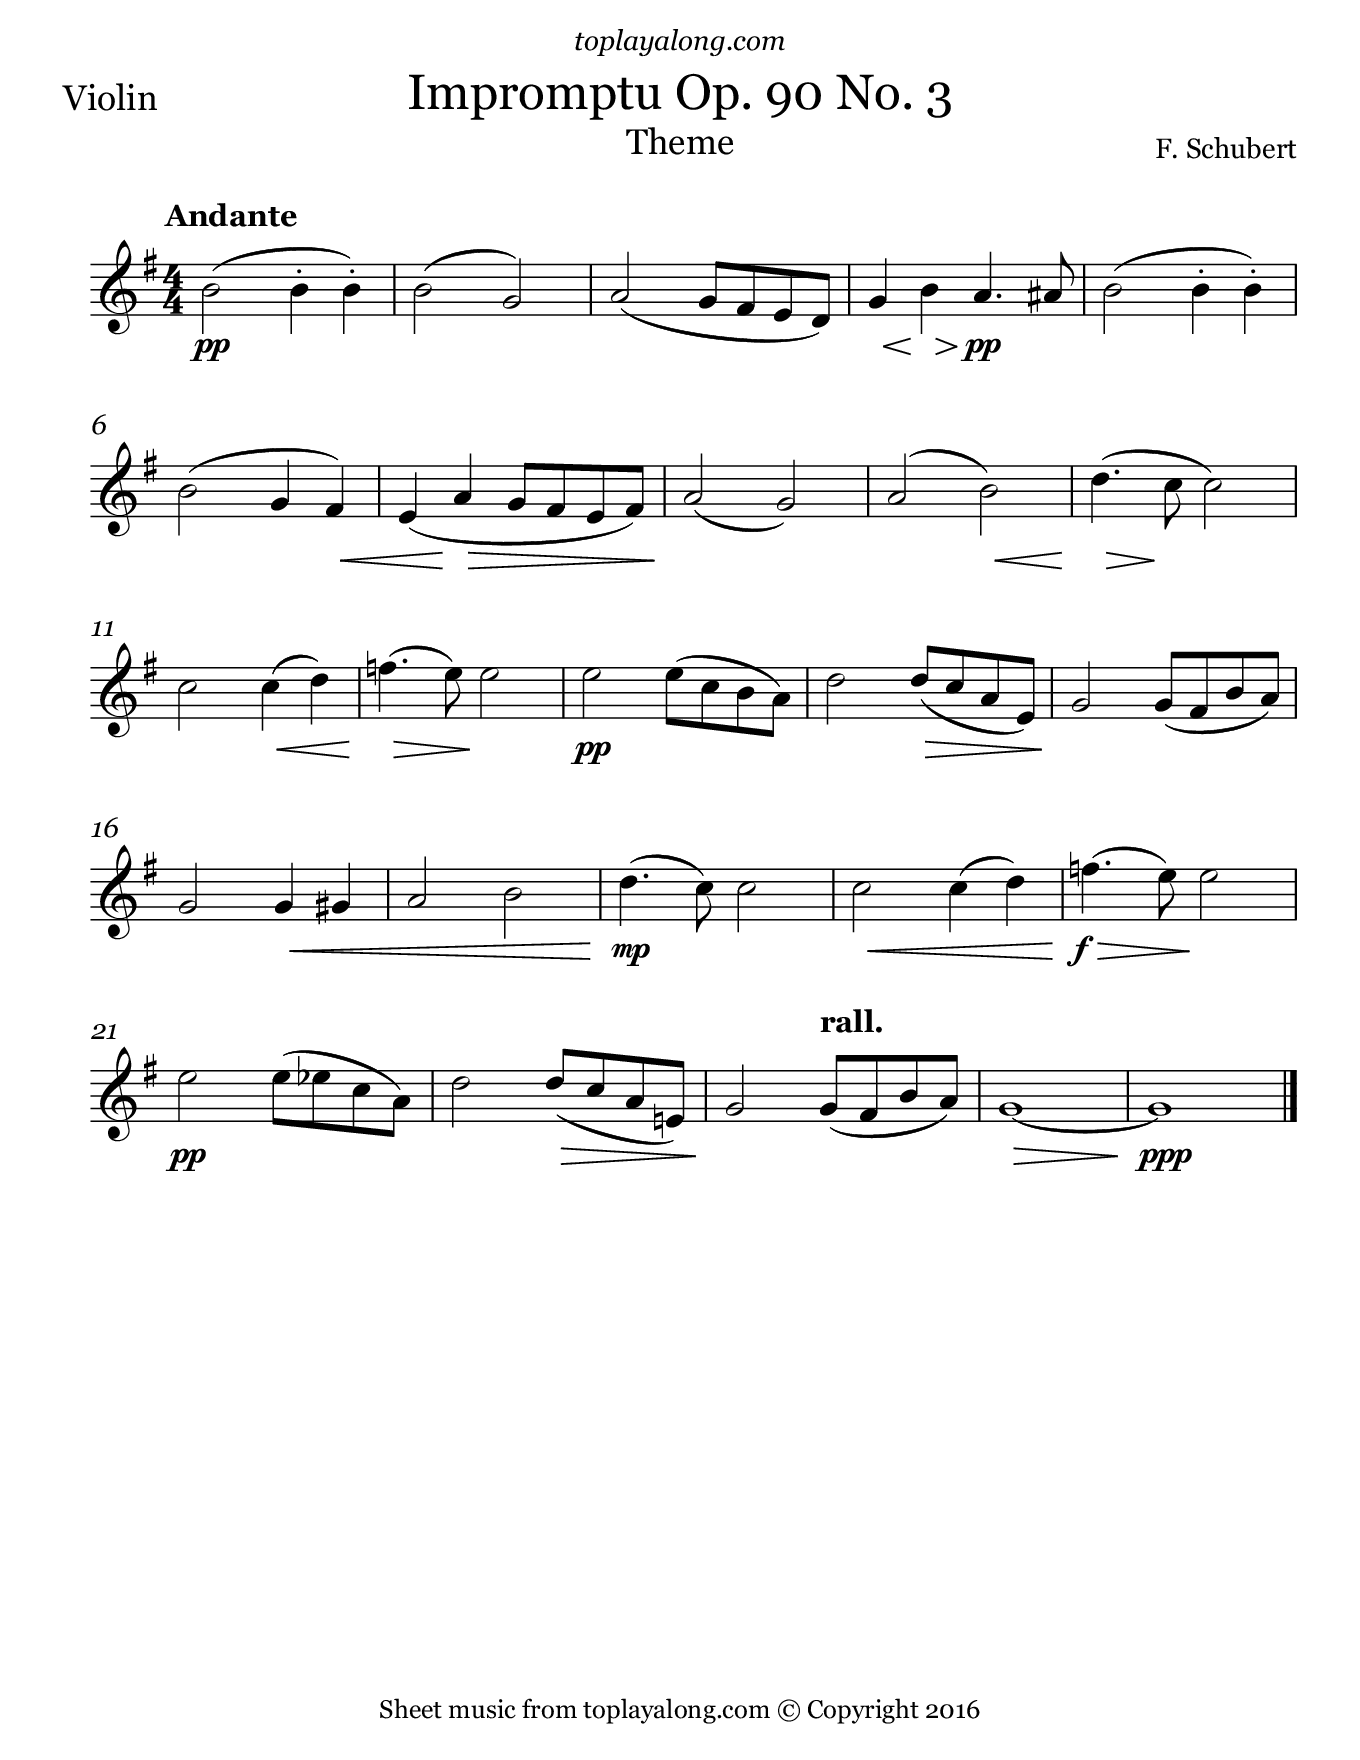 Impromptu Op. 90 No. 3 (Theme) by Schubert. Sheet music for Violin, page 1.